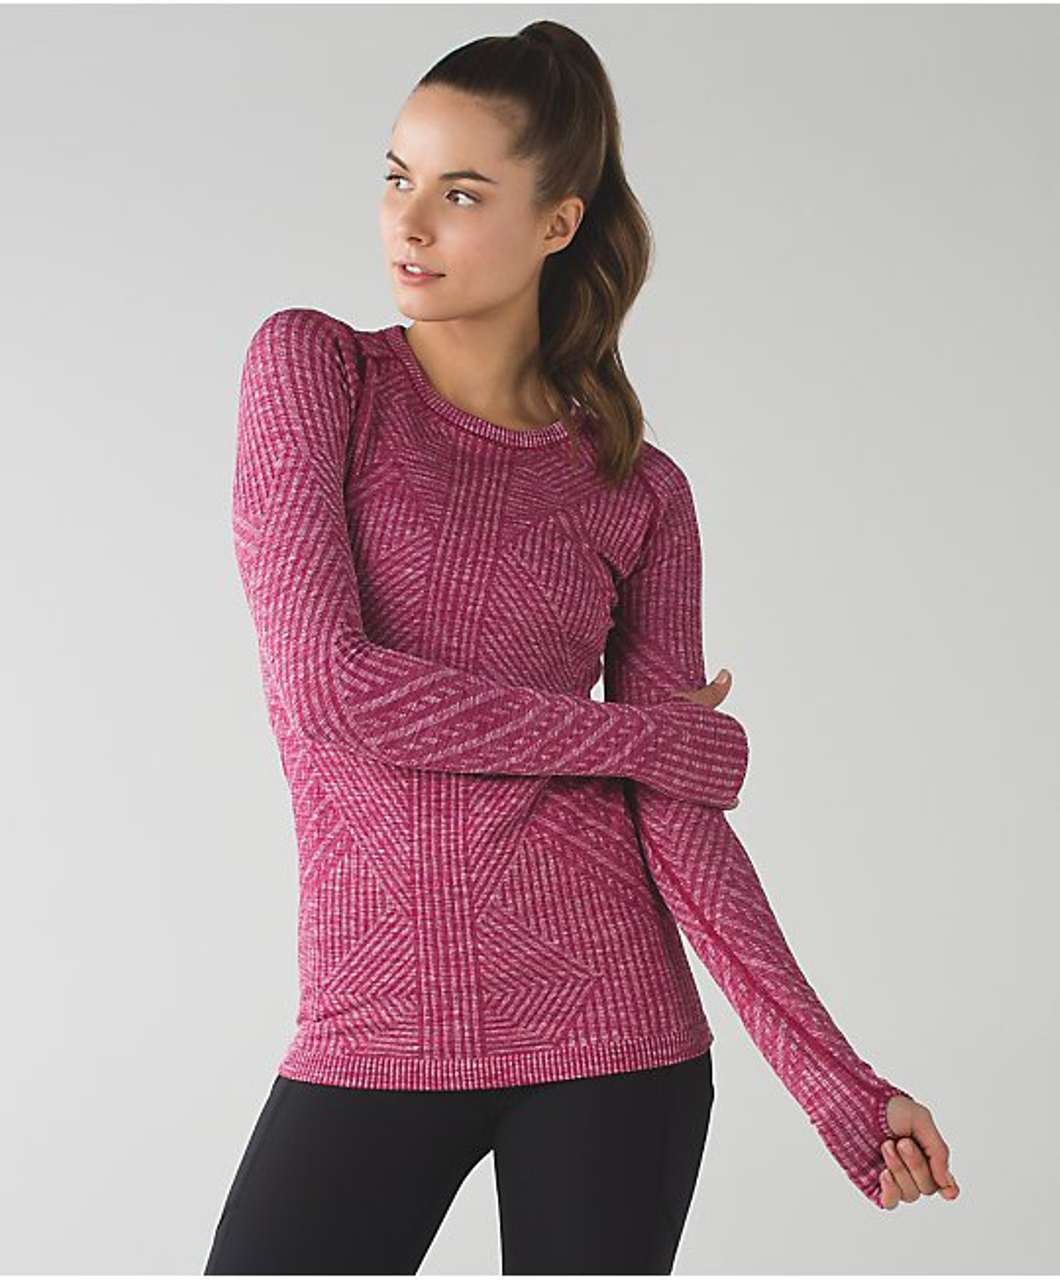 Lululemon Rest Less Pullover - Heathered Berry Rumble